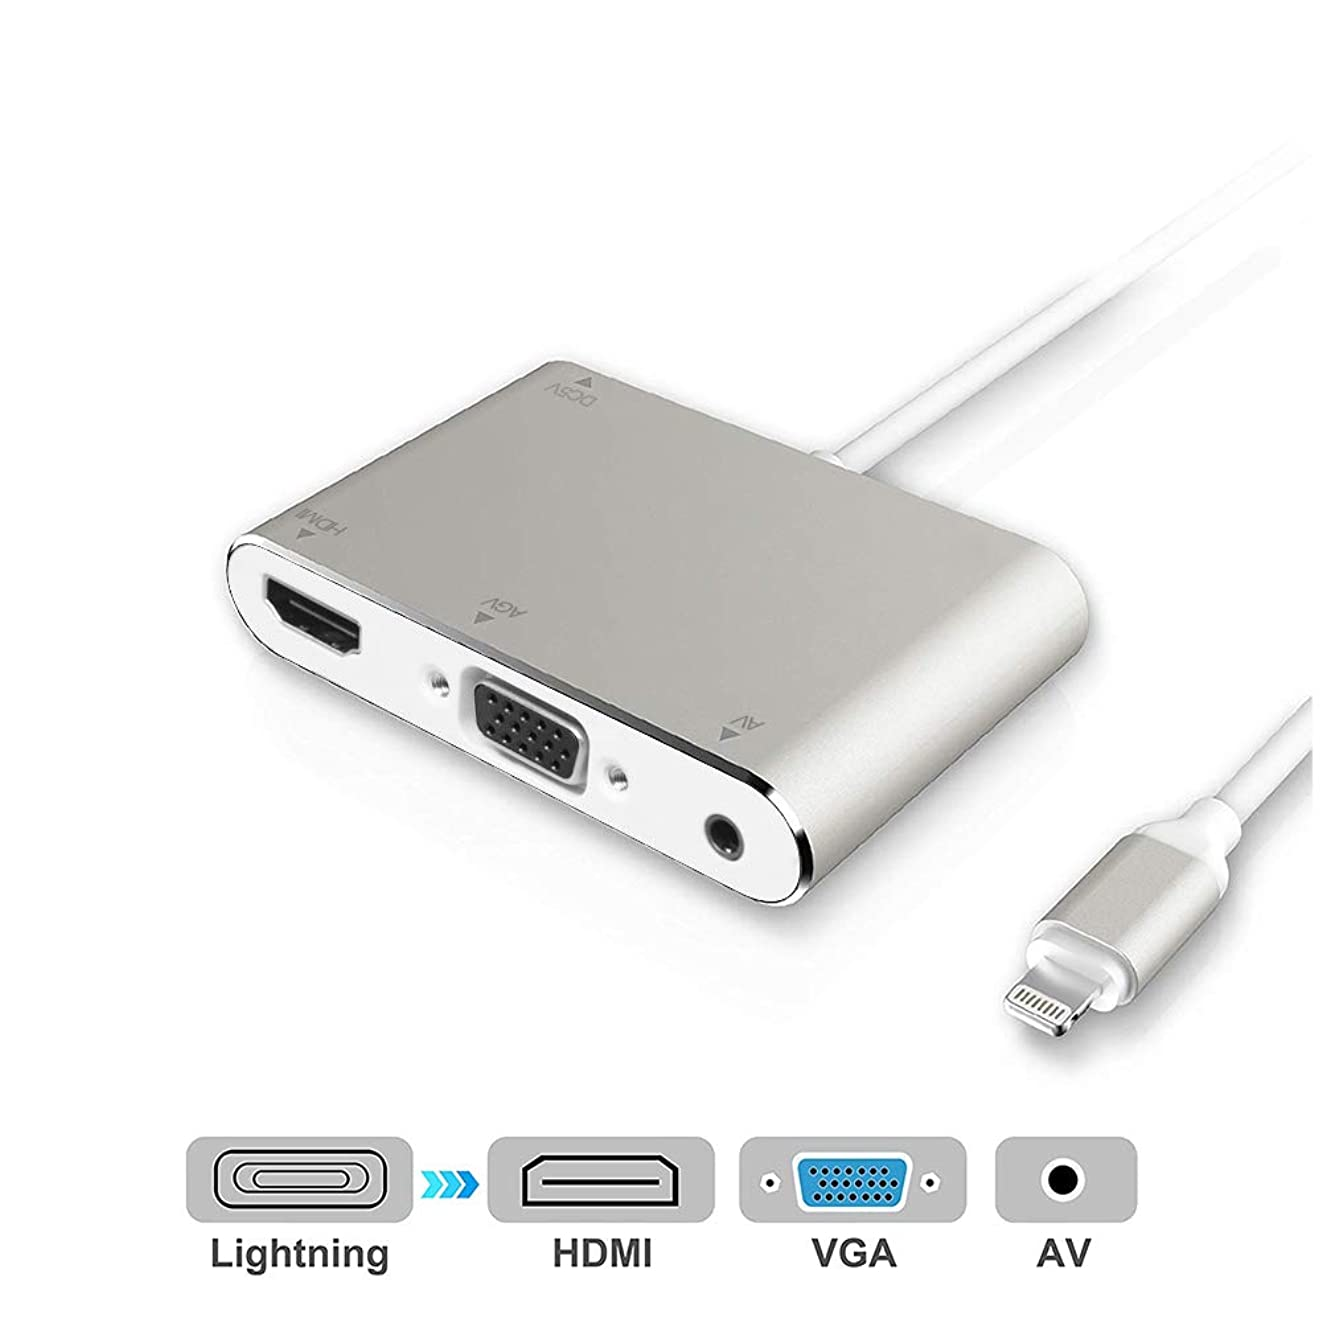 HDMI VGA AV Adapter Converter, 2019 Latest Version 4 in 1 Plug and Play Digtal AV Adapter for iPhone X / 8 / 8Plus/7/7Plus/6/6s/6s Plus/5/5s iPad iPod to Projector HDTV (Silver)